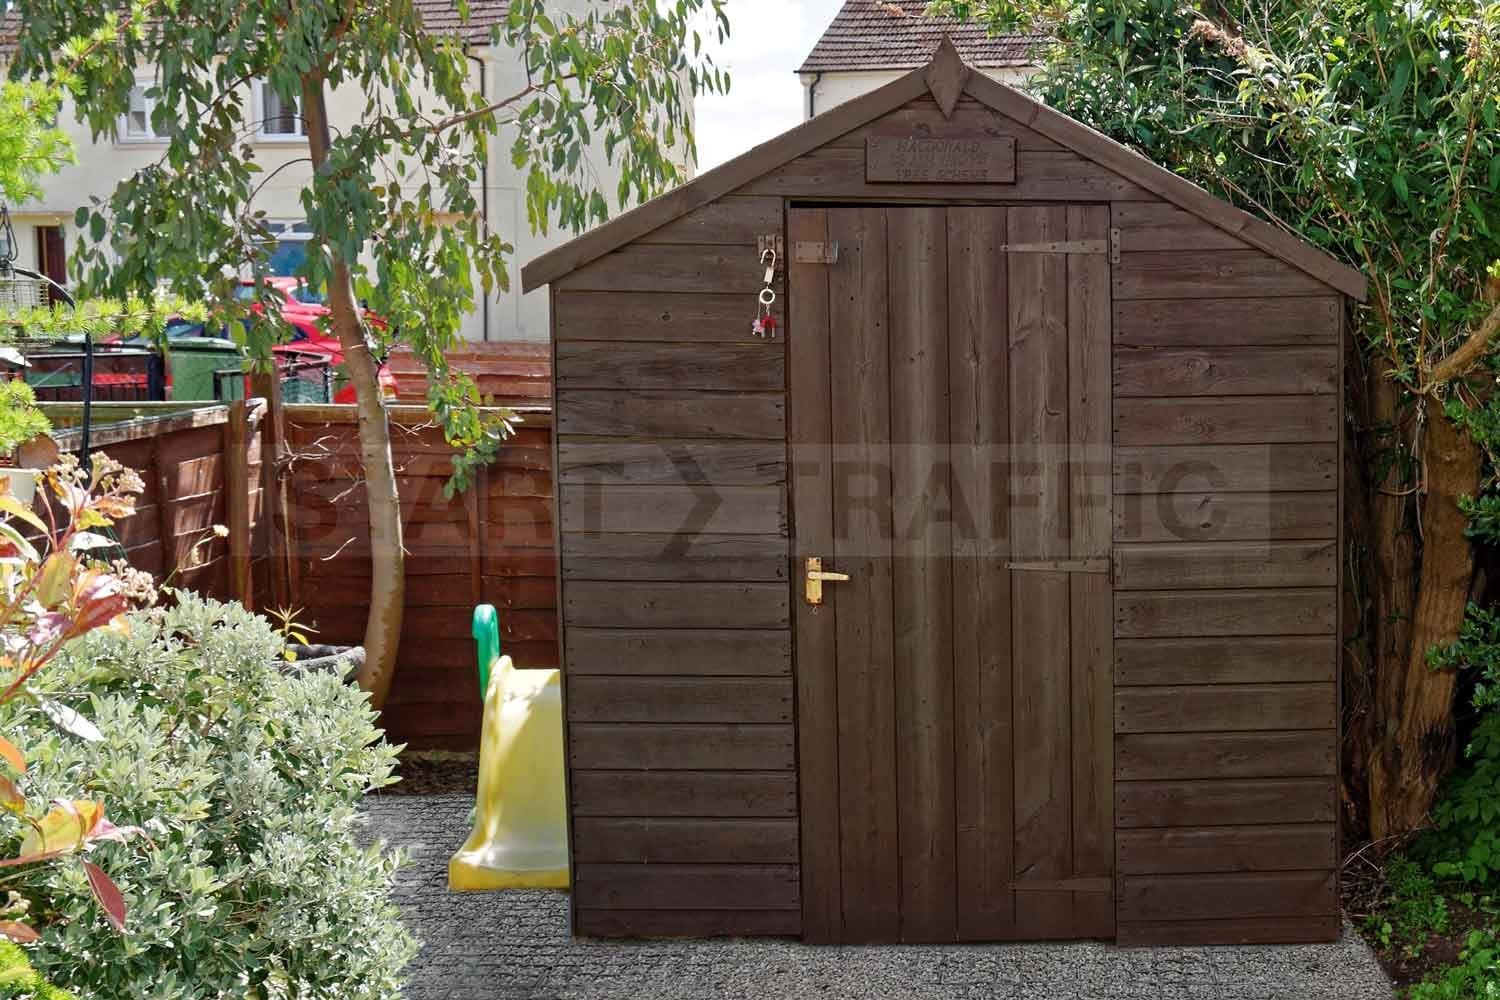 shedGrid used in garden